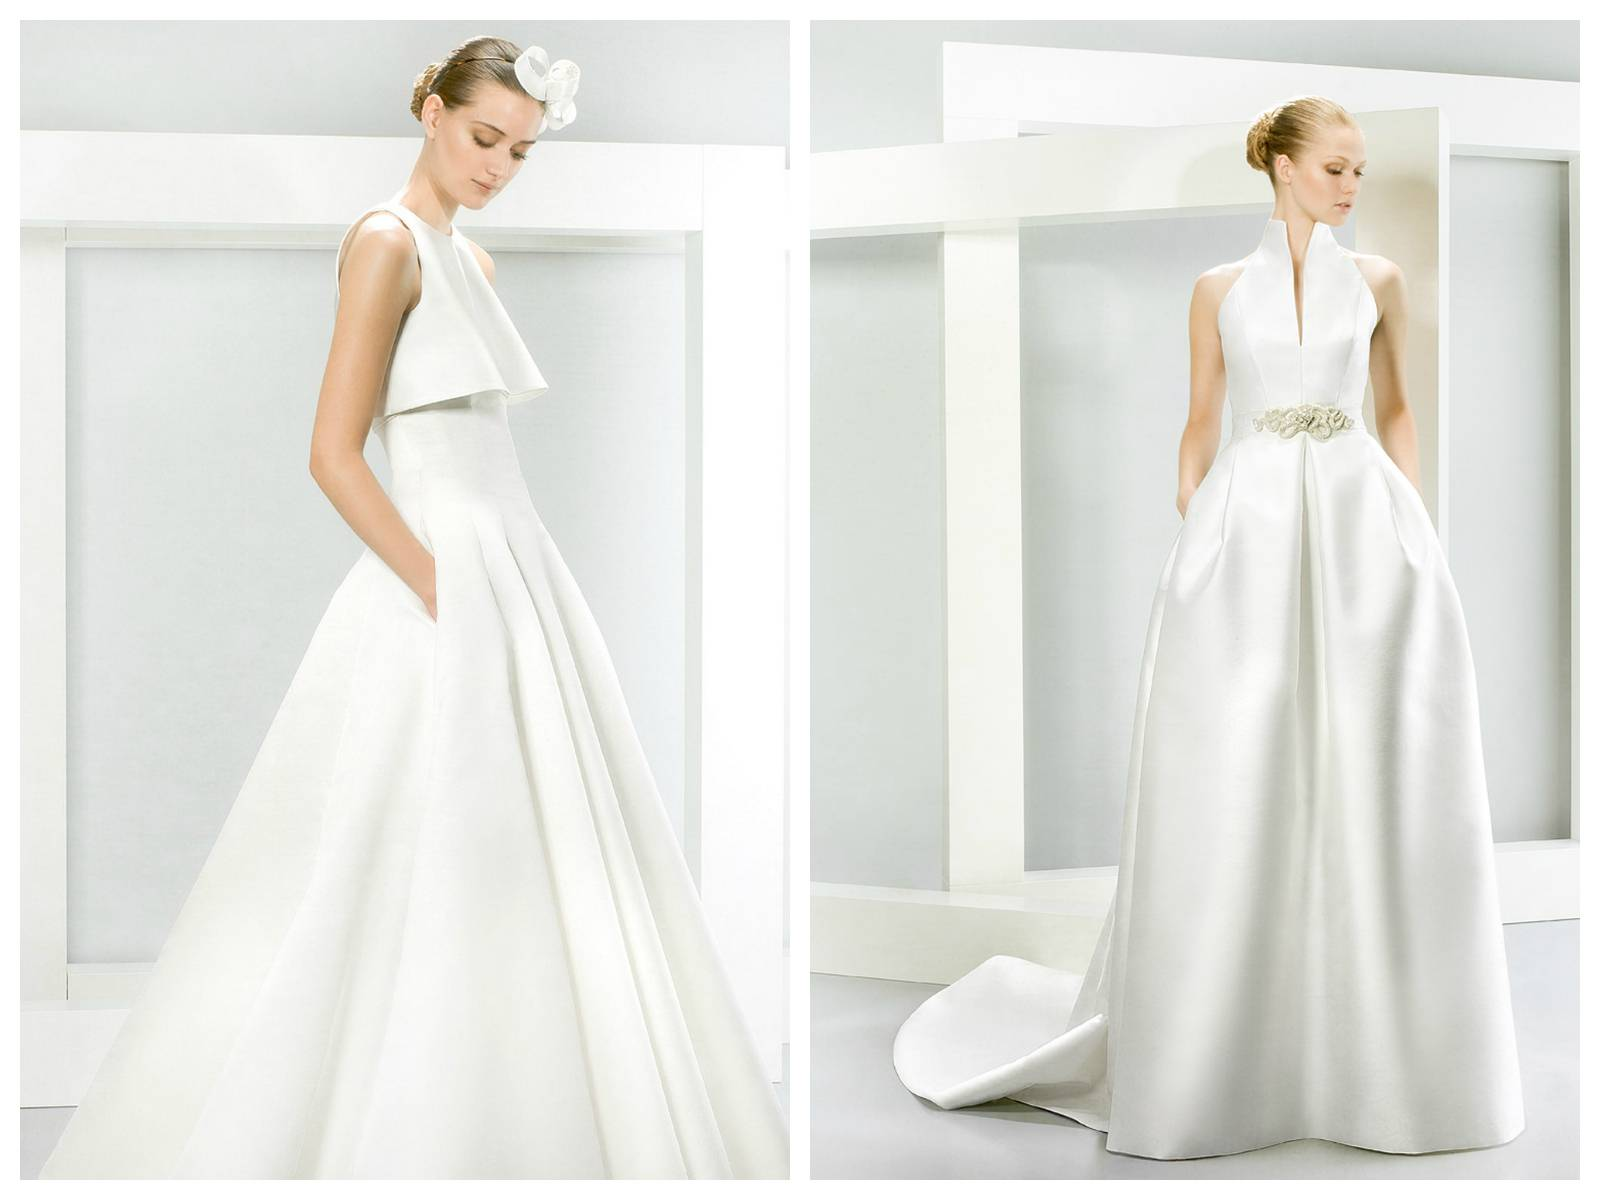 13 wedding gowns with pockets wedding dress with pockets Share on Tumblr